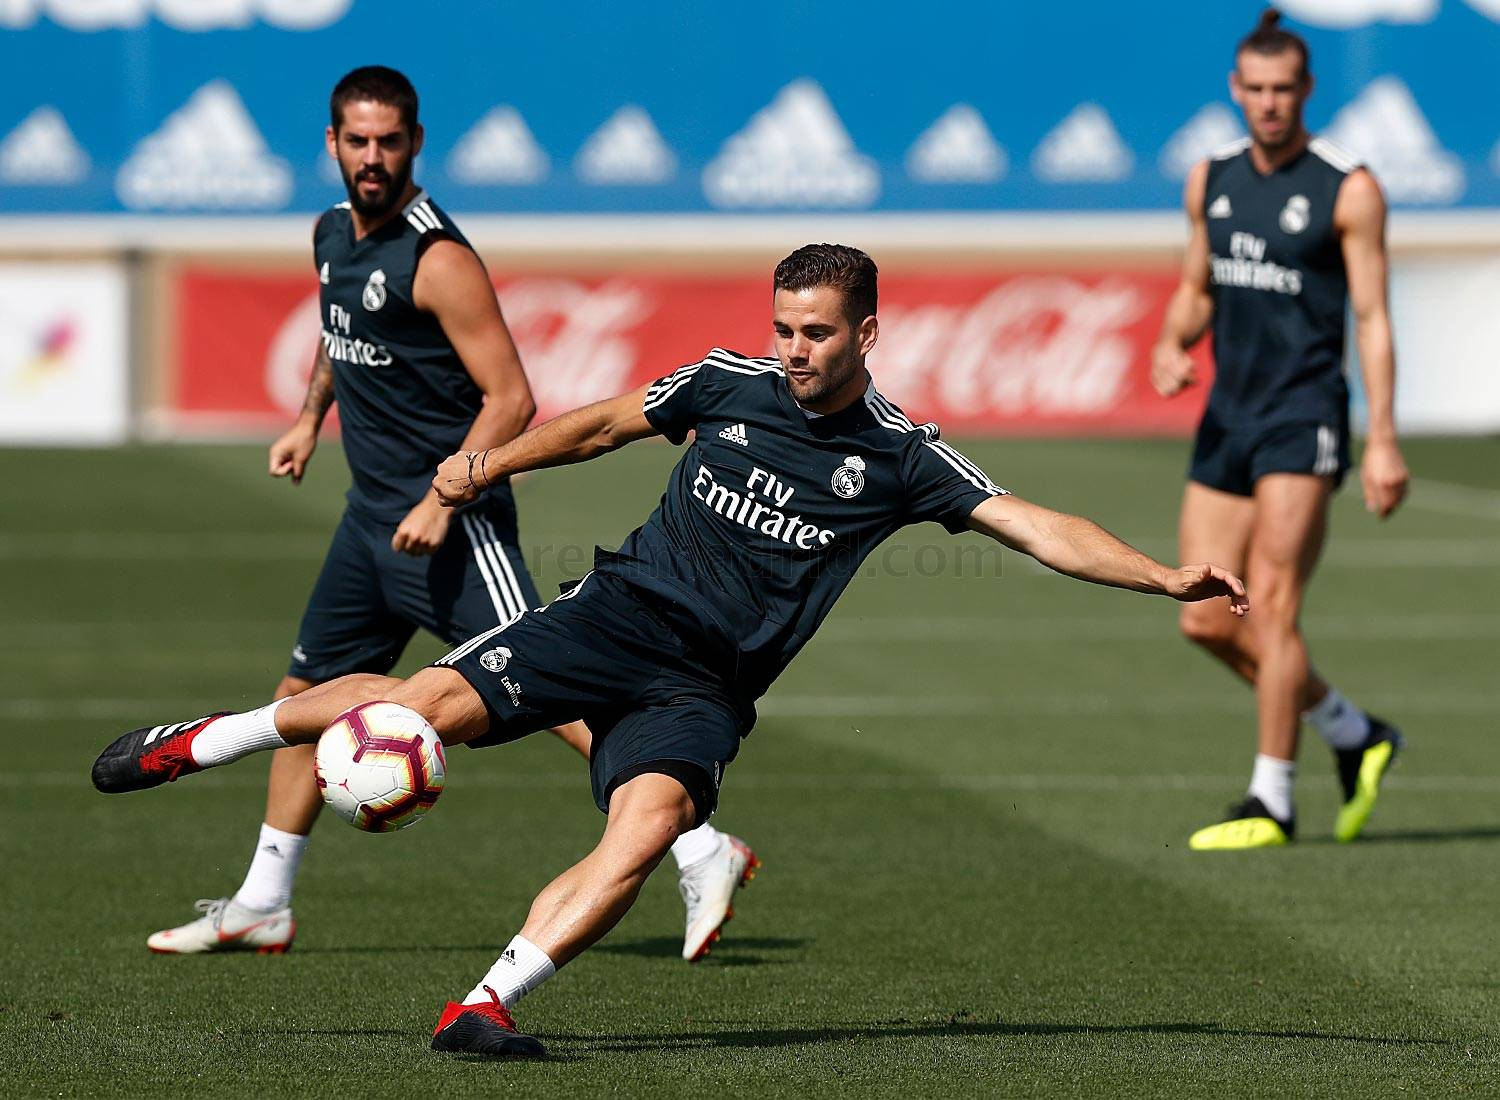 Real Madrid - Entrenamiento del Real Madrid - 25-08-2018